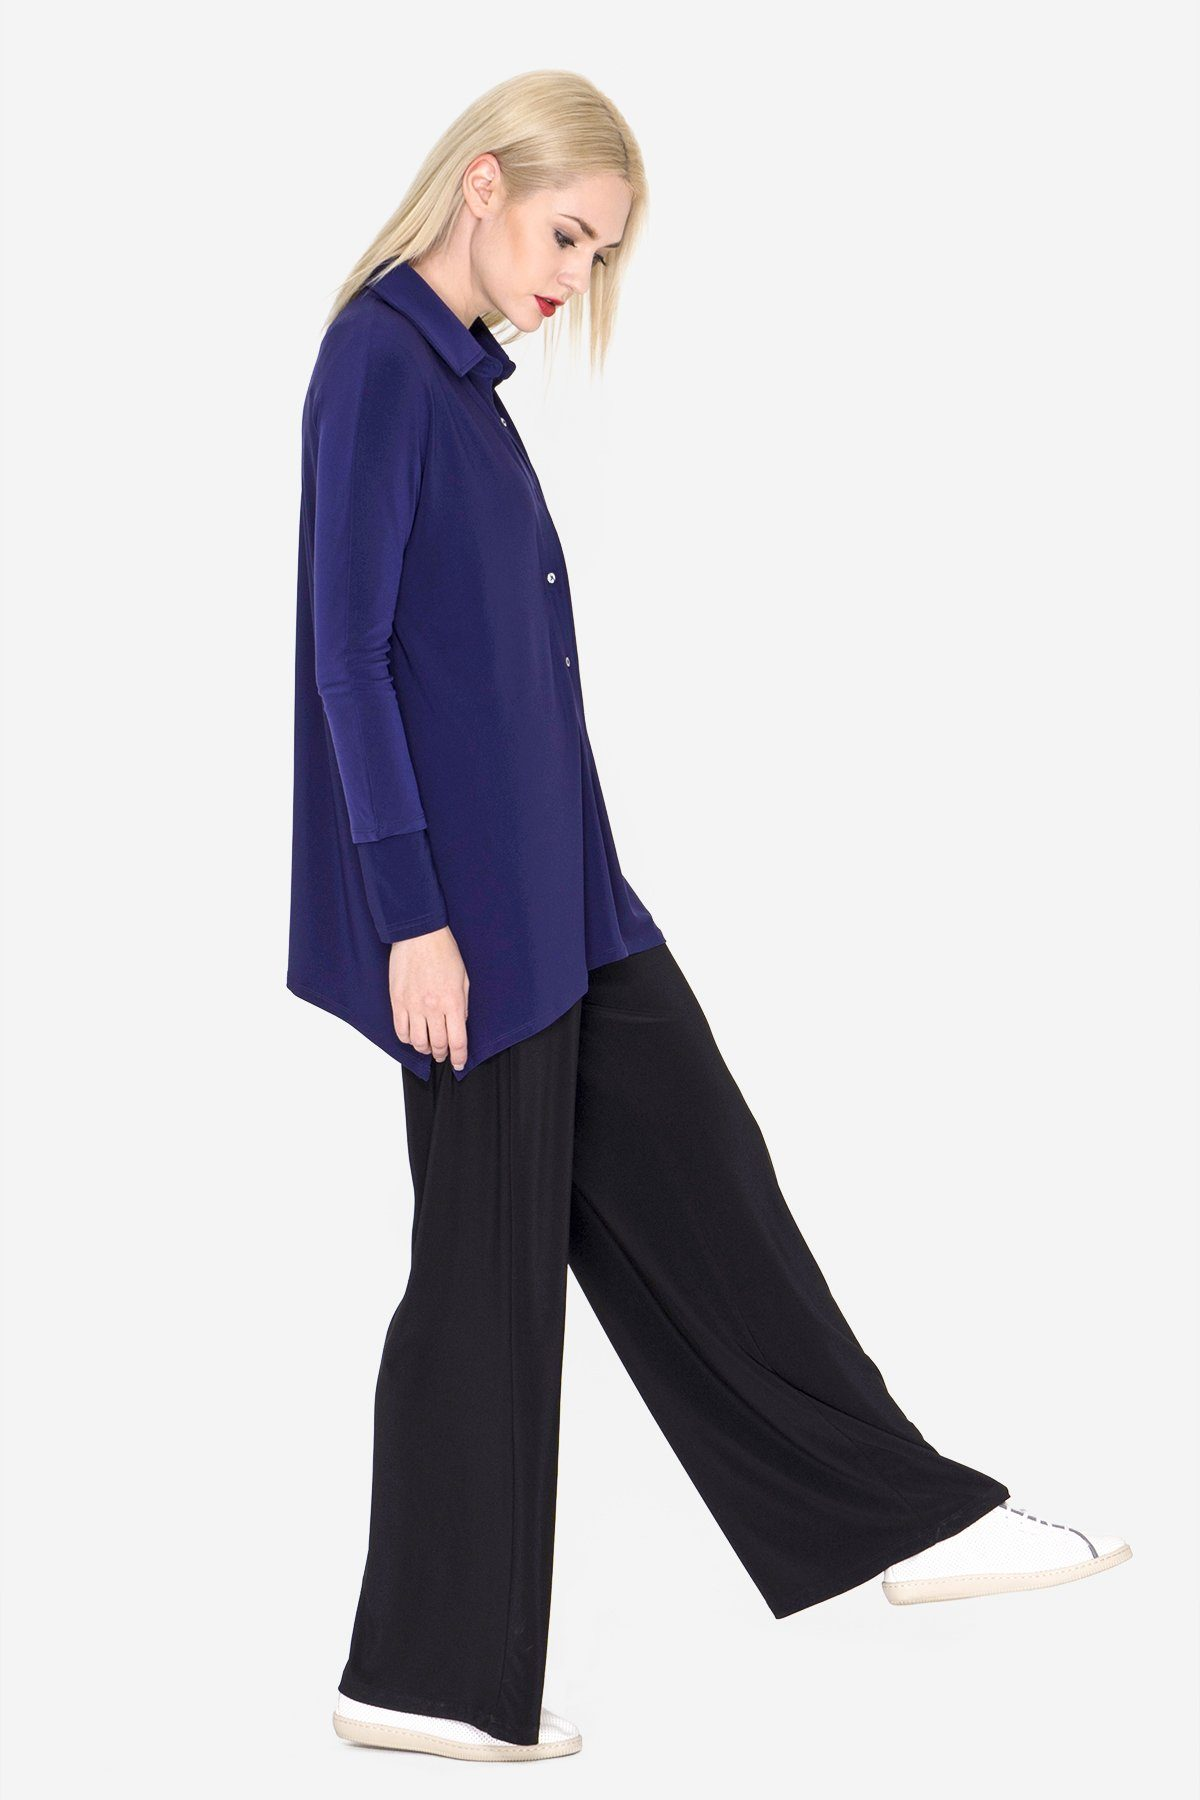 Women's Navy Button Shirt with Curved Hem 3/4 Sleeves Travel Shirt Rosarini